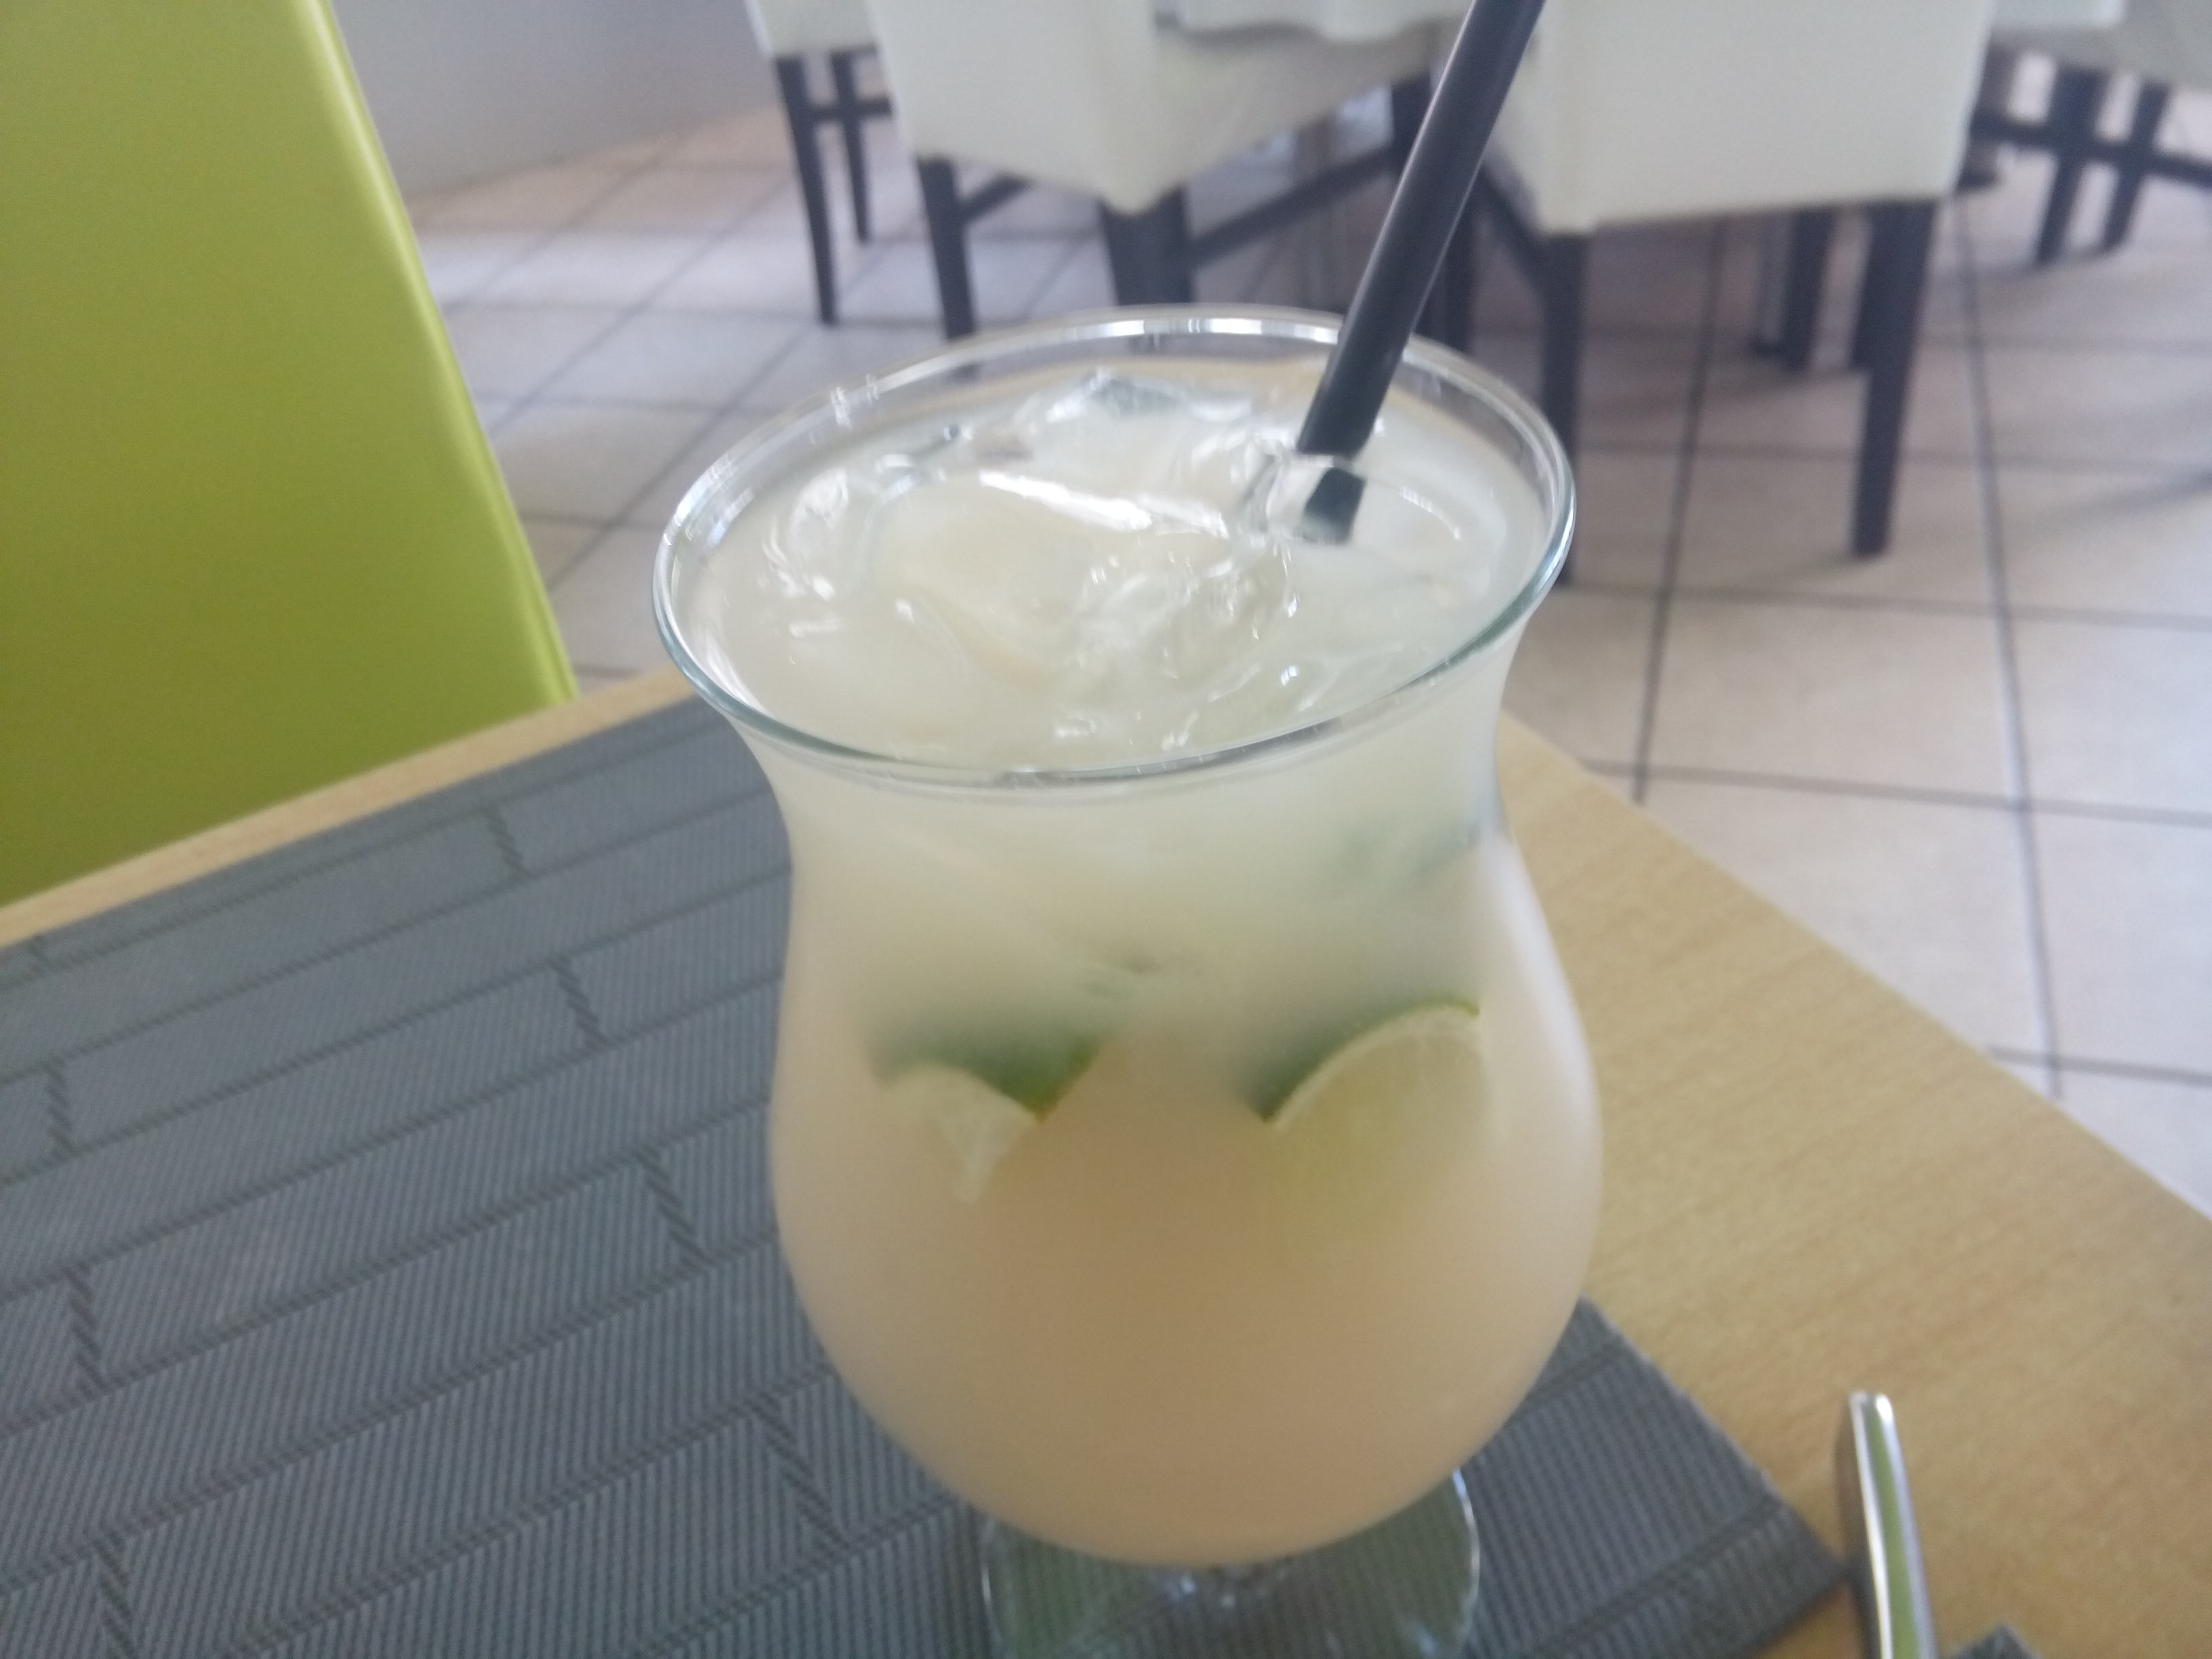 A large cocktail glass with a cloudy liquid and a straw